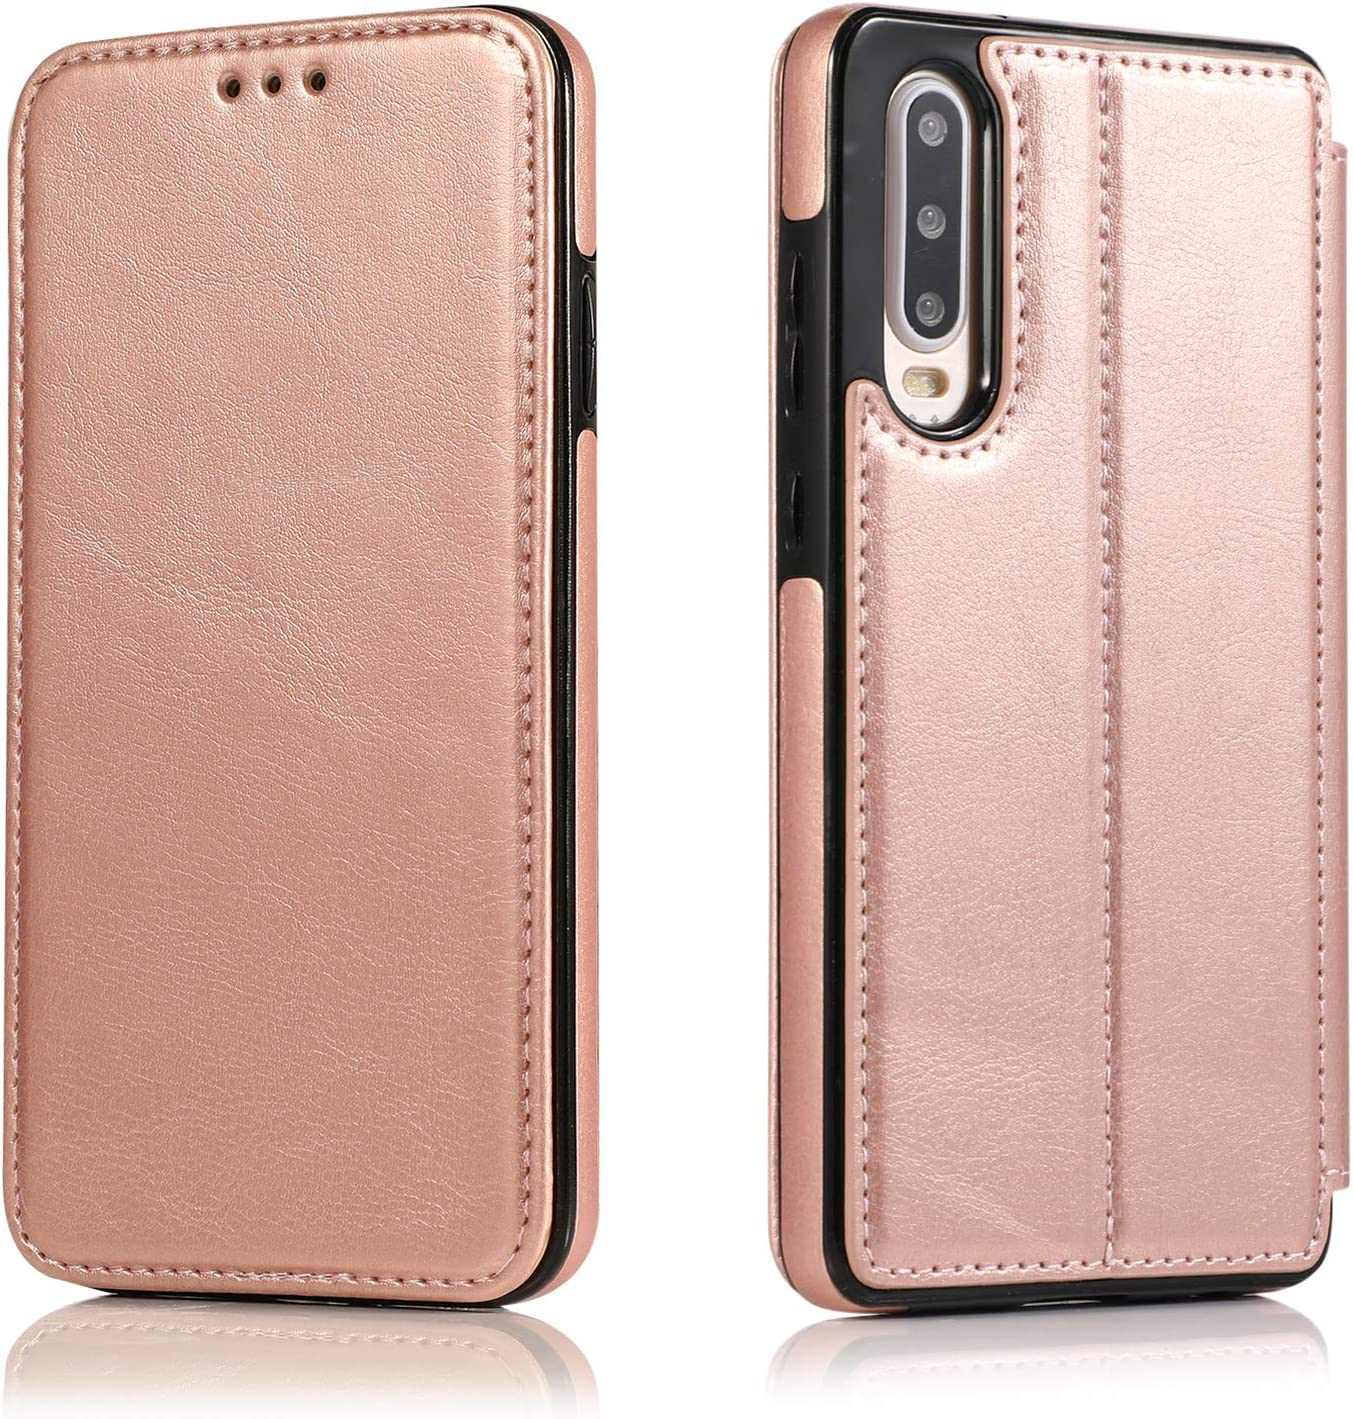 DESCHE compatible for Huawei P30 Leather Case Magnetic Flip Cover Leather Card Slot Cover Brown